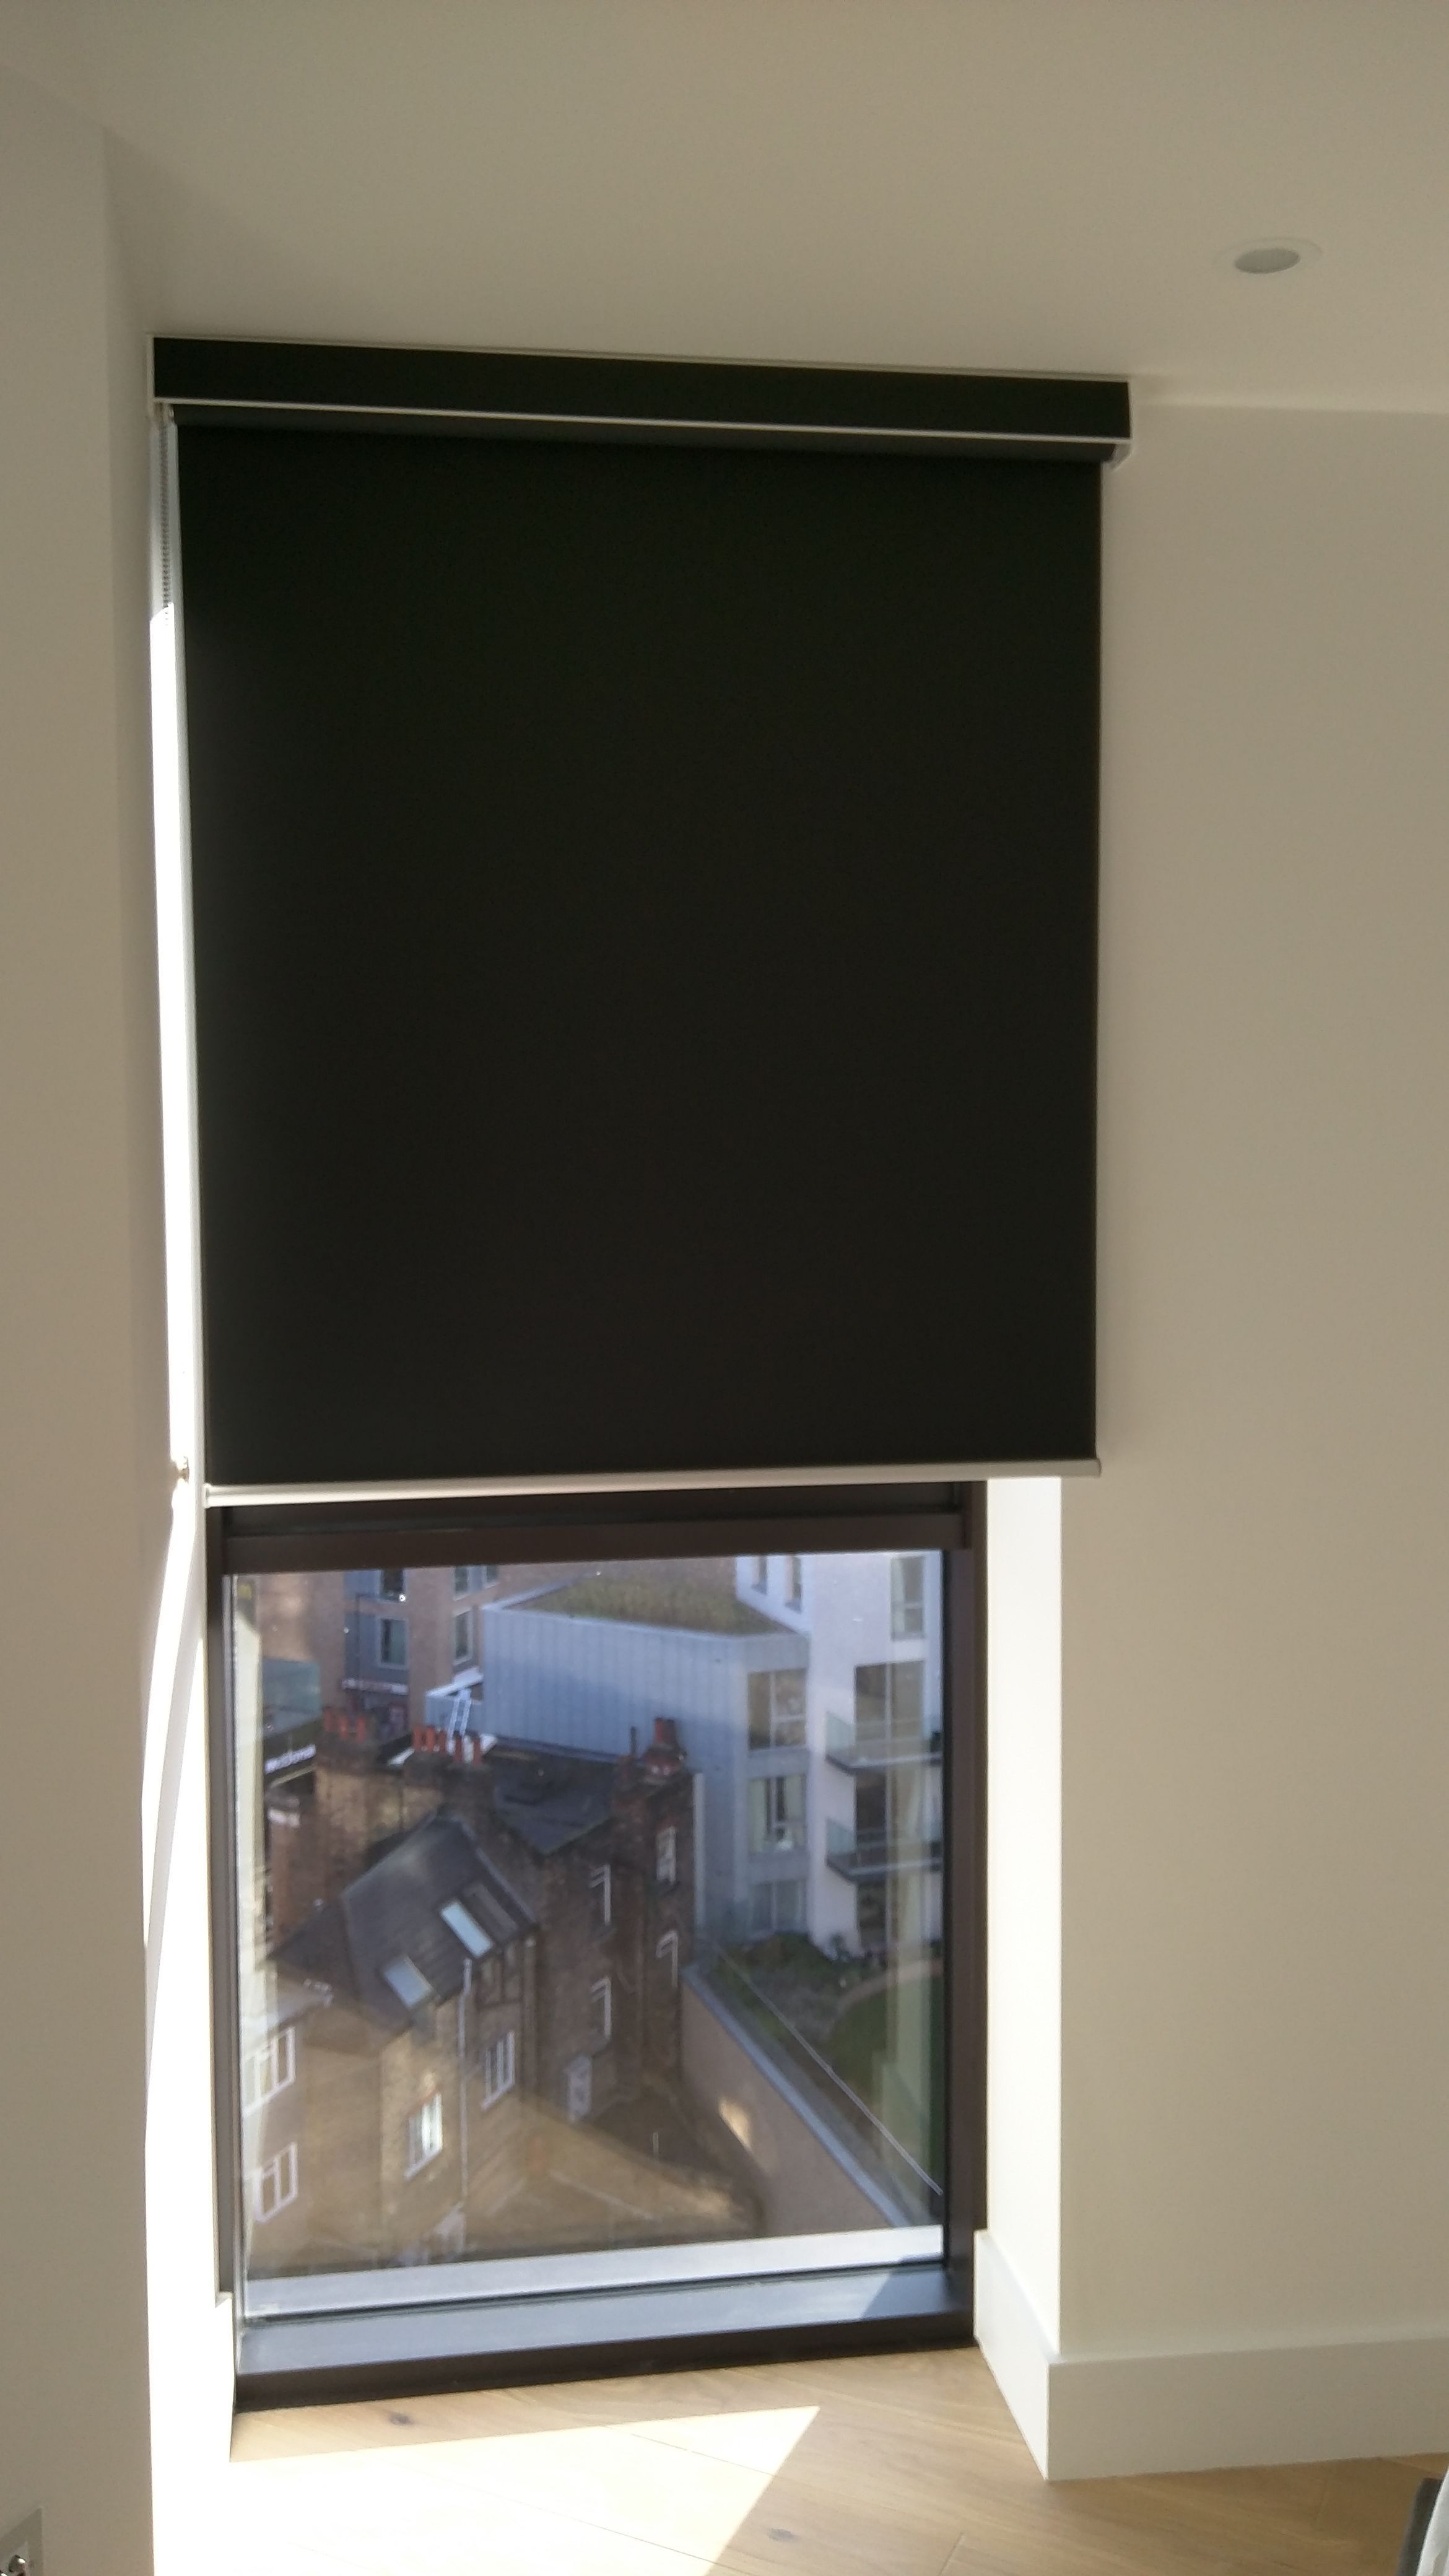 Blackout Roller Blind With Matching Pelmet Fitted Outside The Recess Window Bedroom Blind Dalston M Wooden Window Blinds Vertical Blinds Diy House Blinds